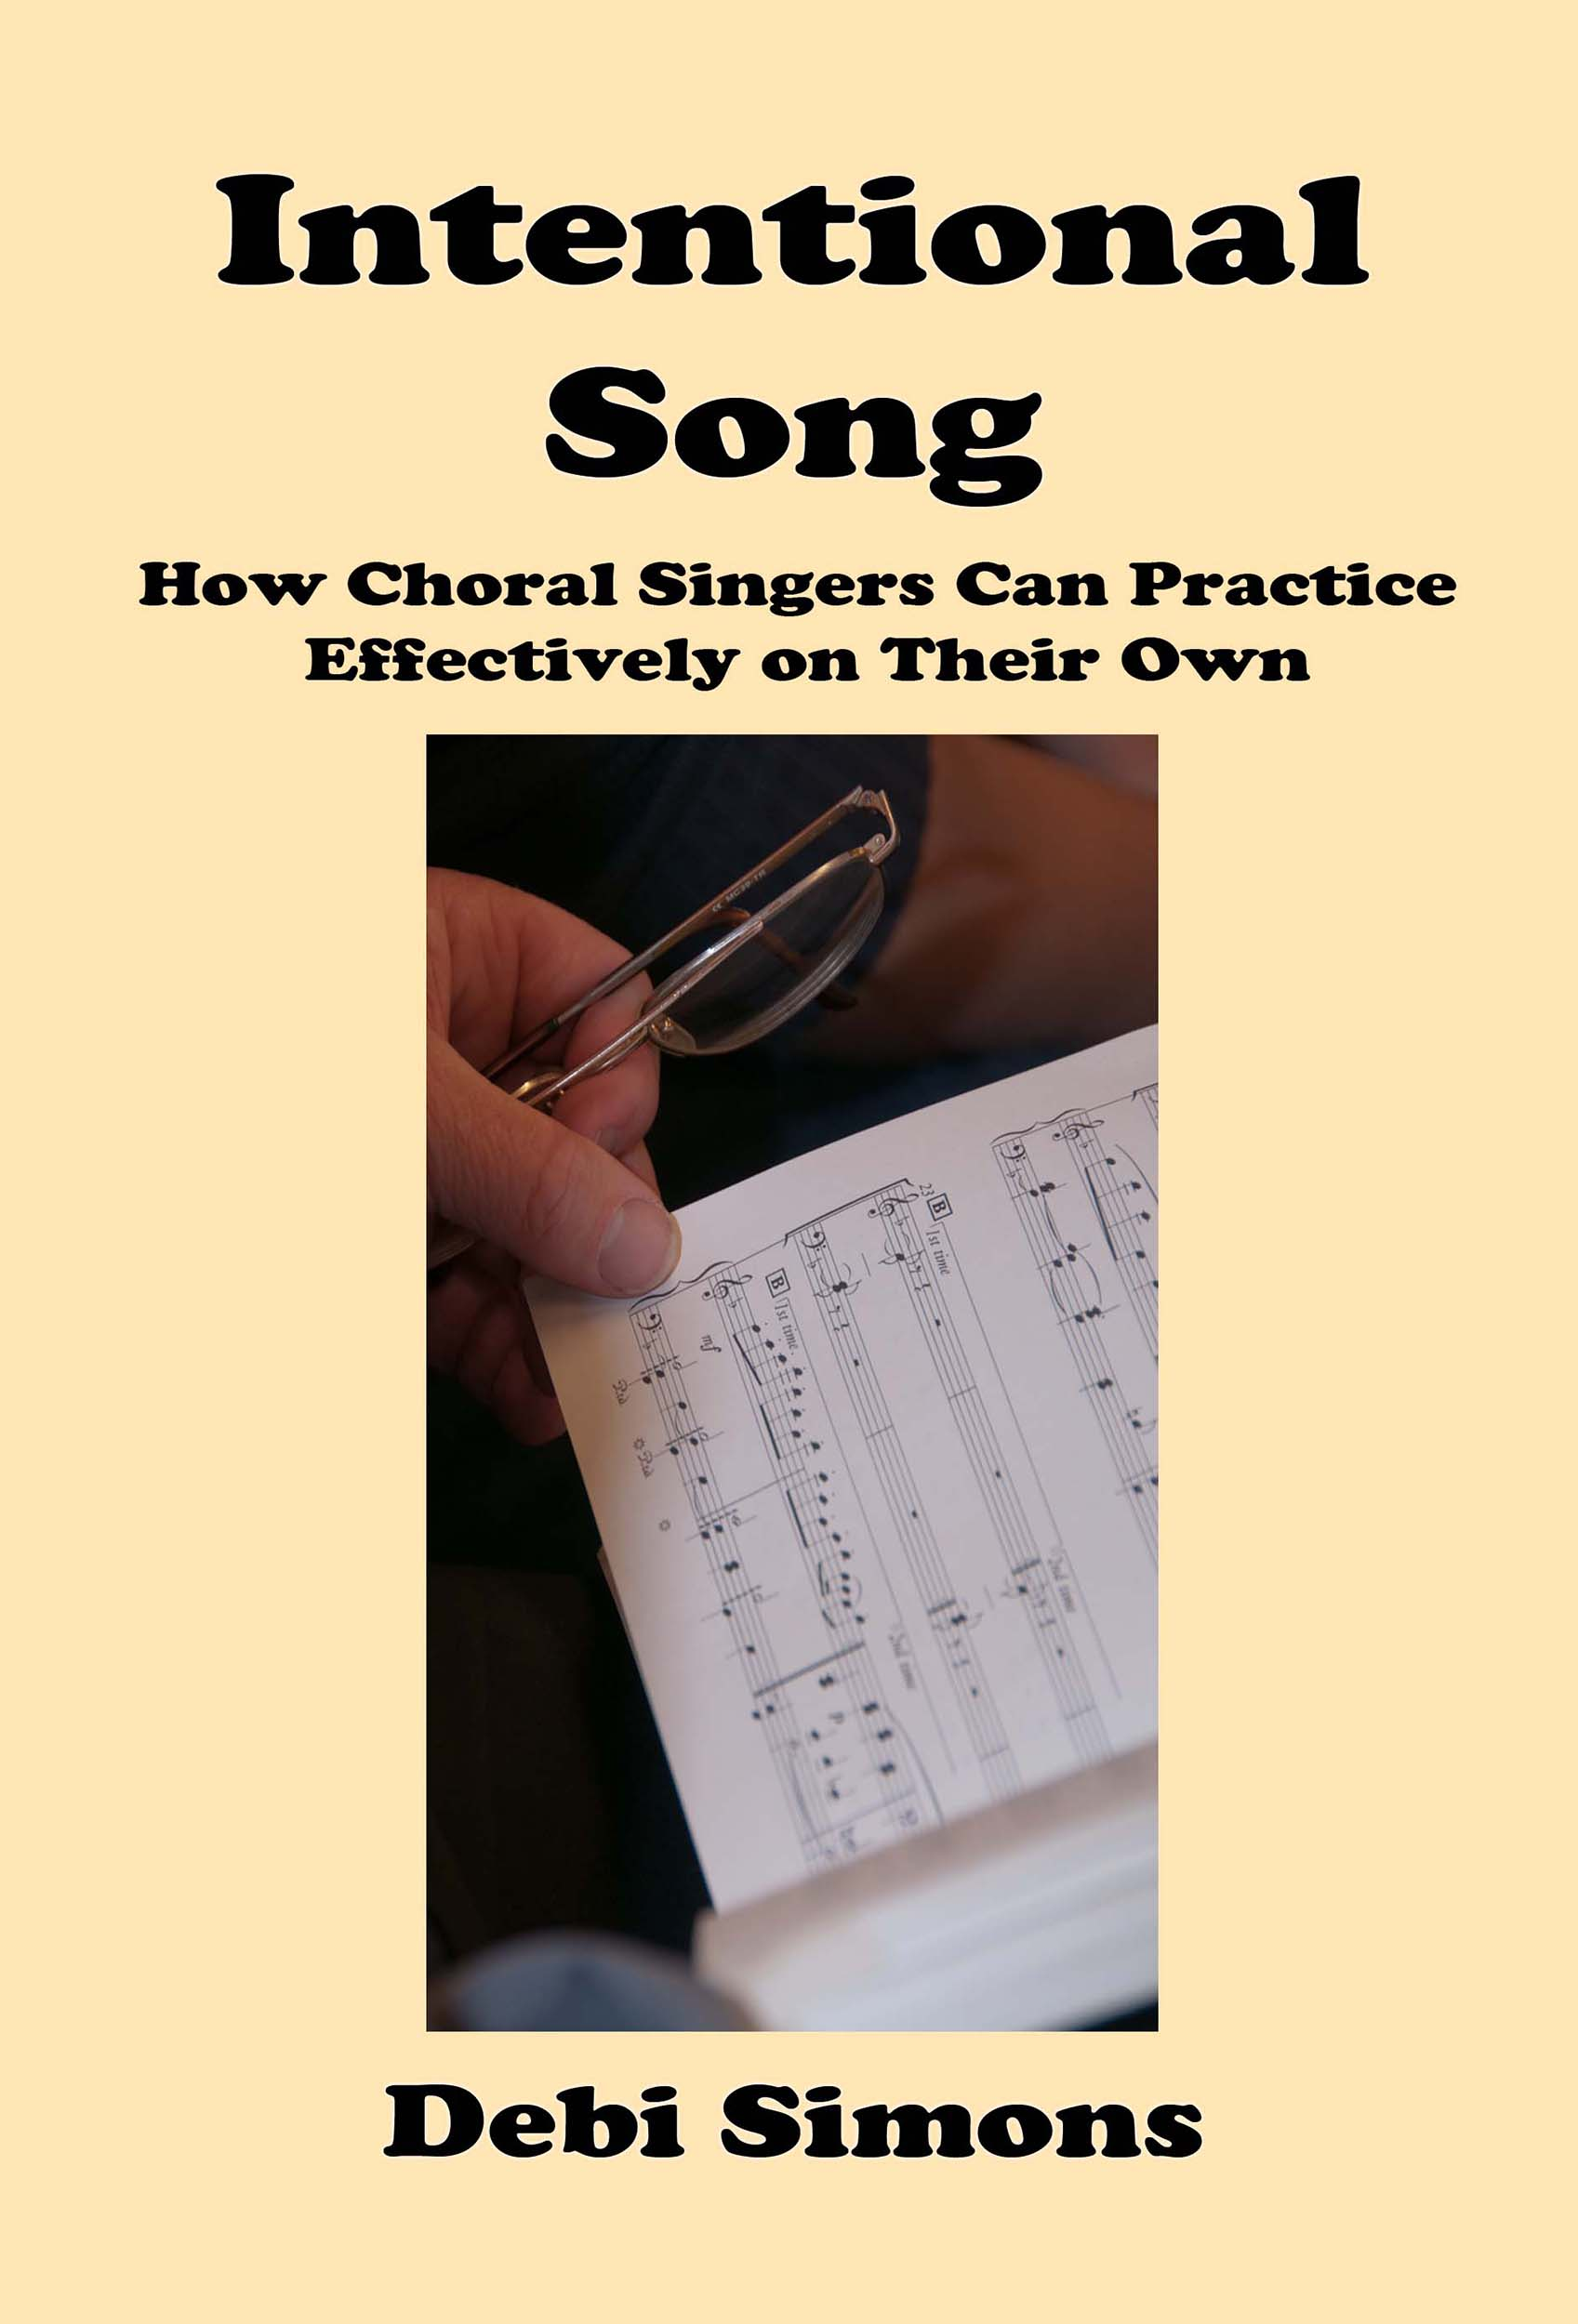 Intentional Song cover with picture of hand holding glasses and turning a page of music